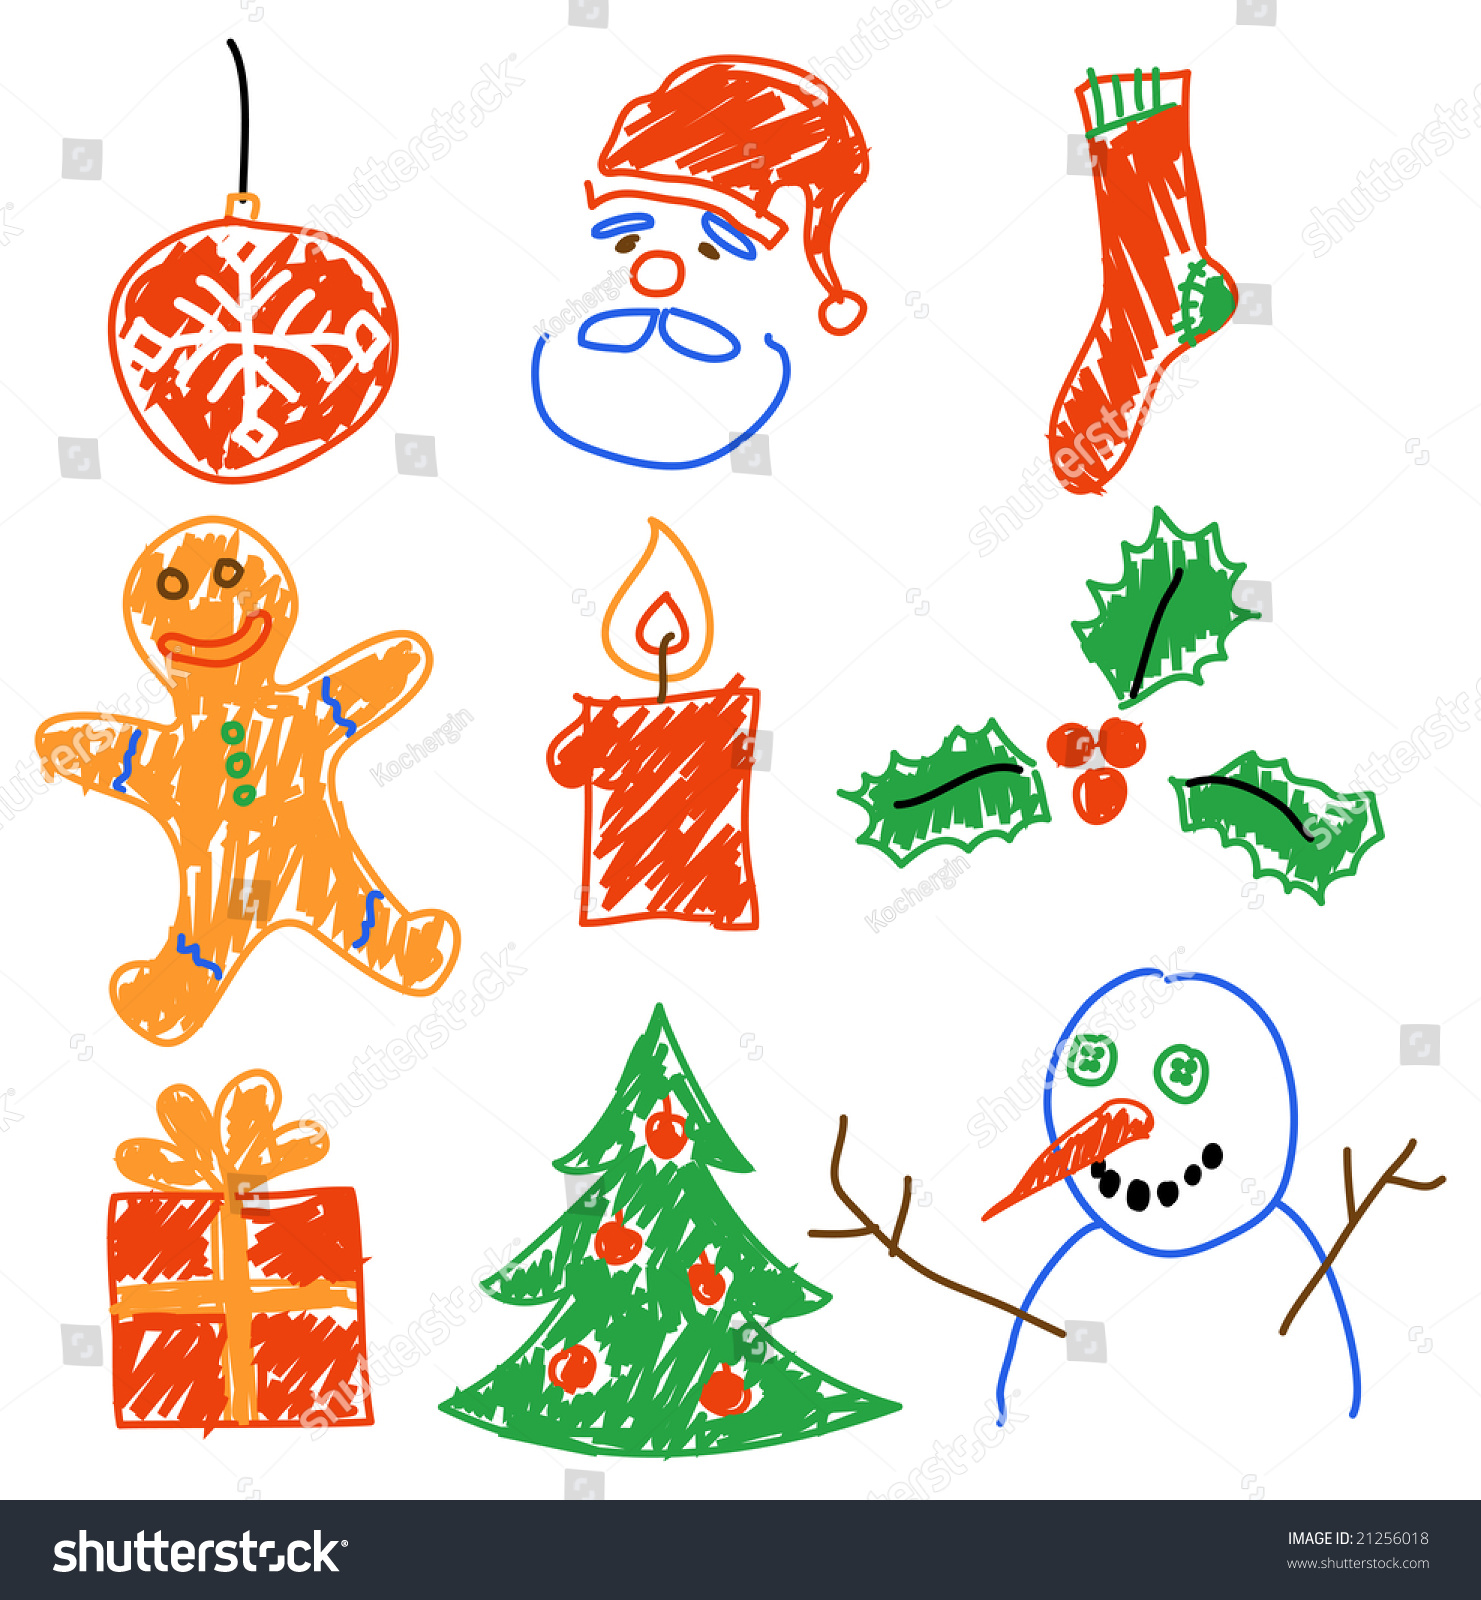 Hand drawing christmas decorations santa snowman stock for Drawing decoration ideas